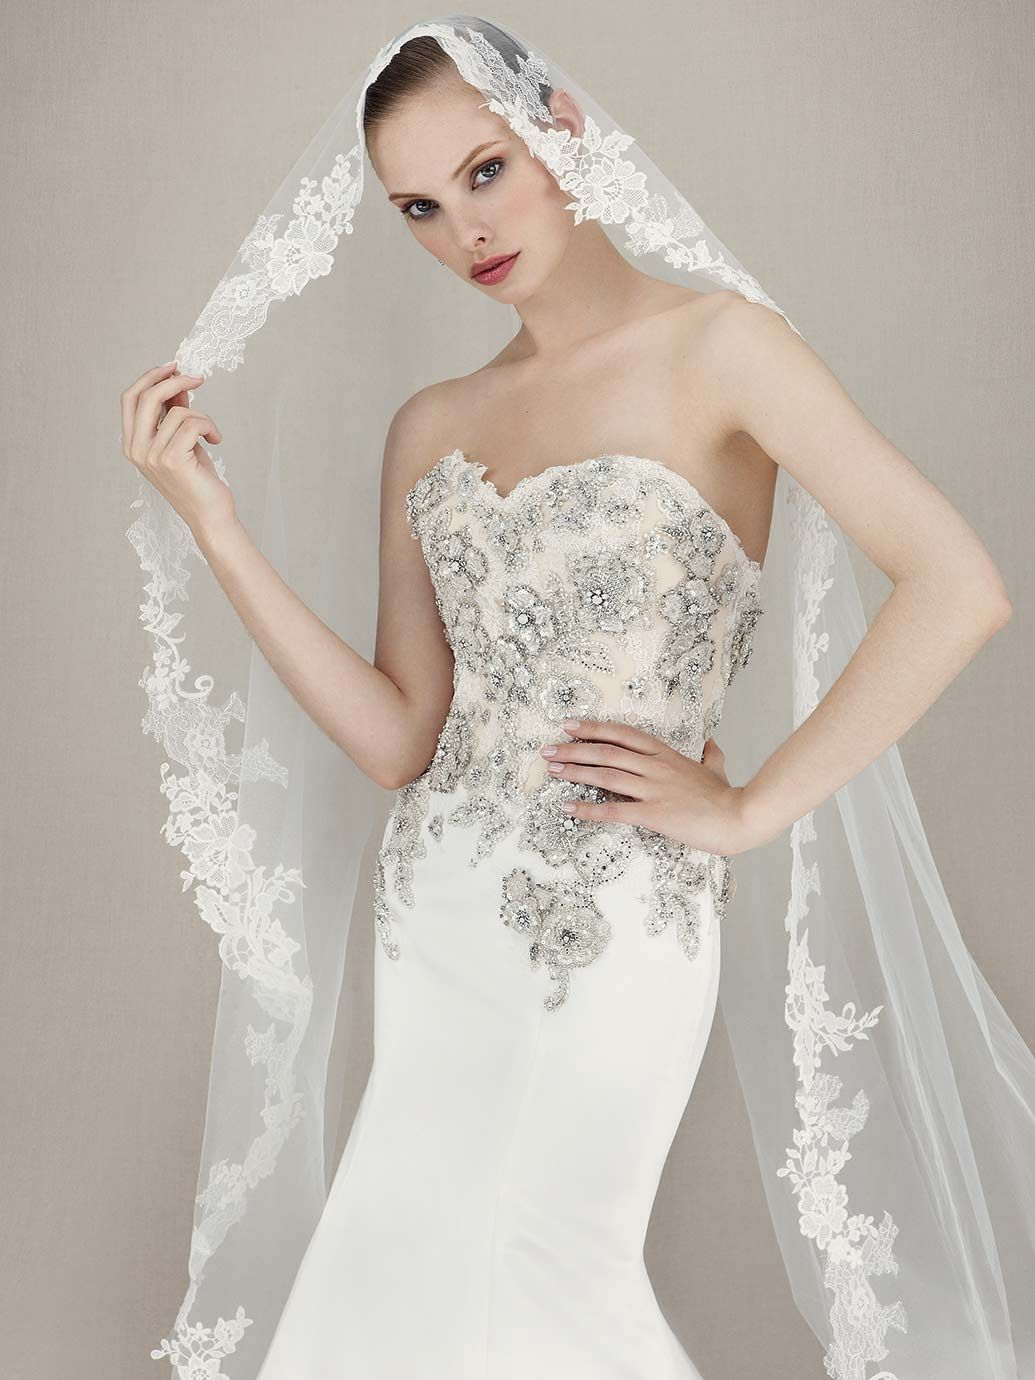 2016 enzoani kassidy alternate view 2016 enzoani collection enzoani wedding dresses from the newest collection are todays beautiful bridal inspiration with the most stunning silhouettes ombrellifo Choice Image